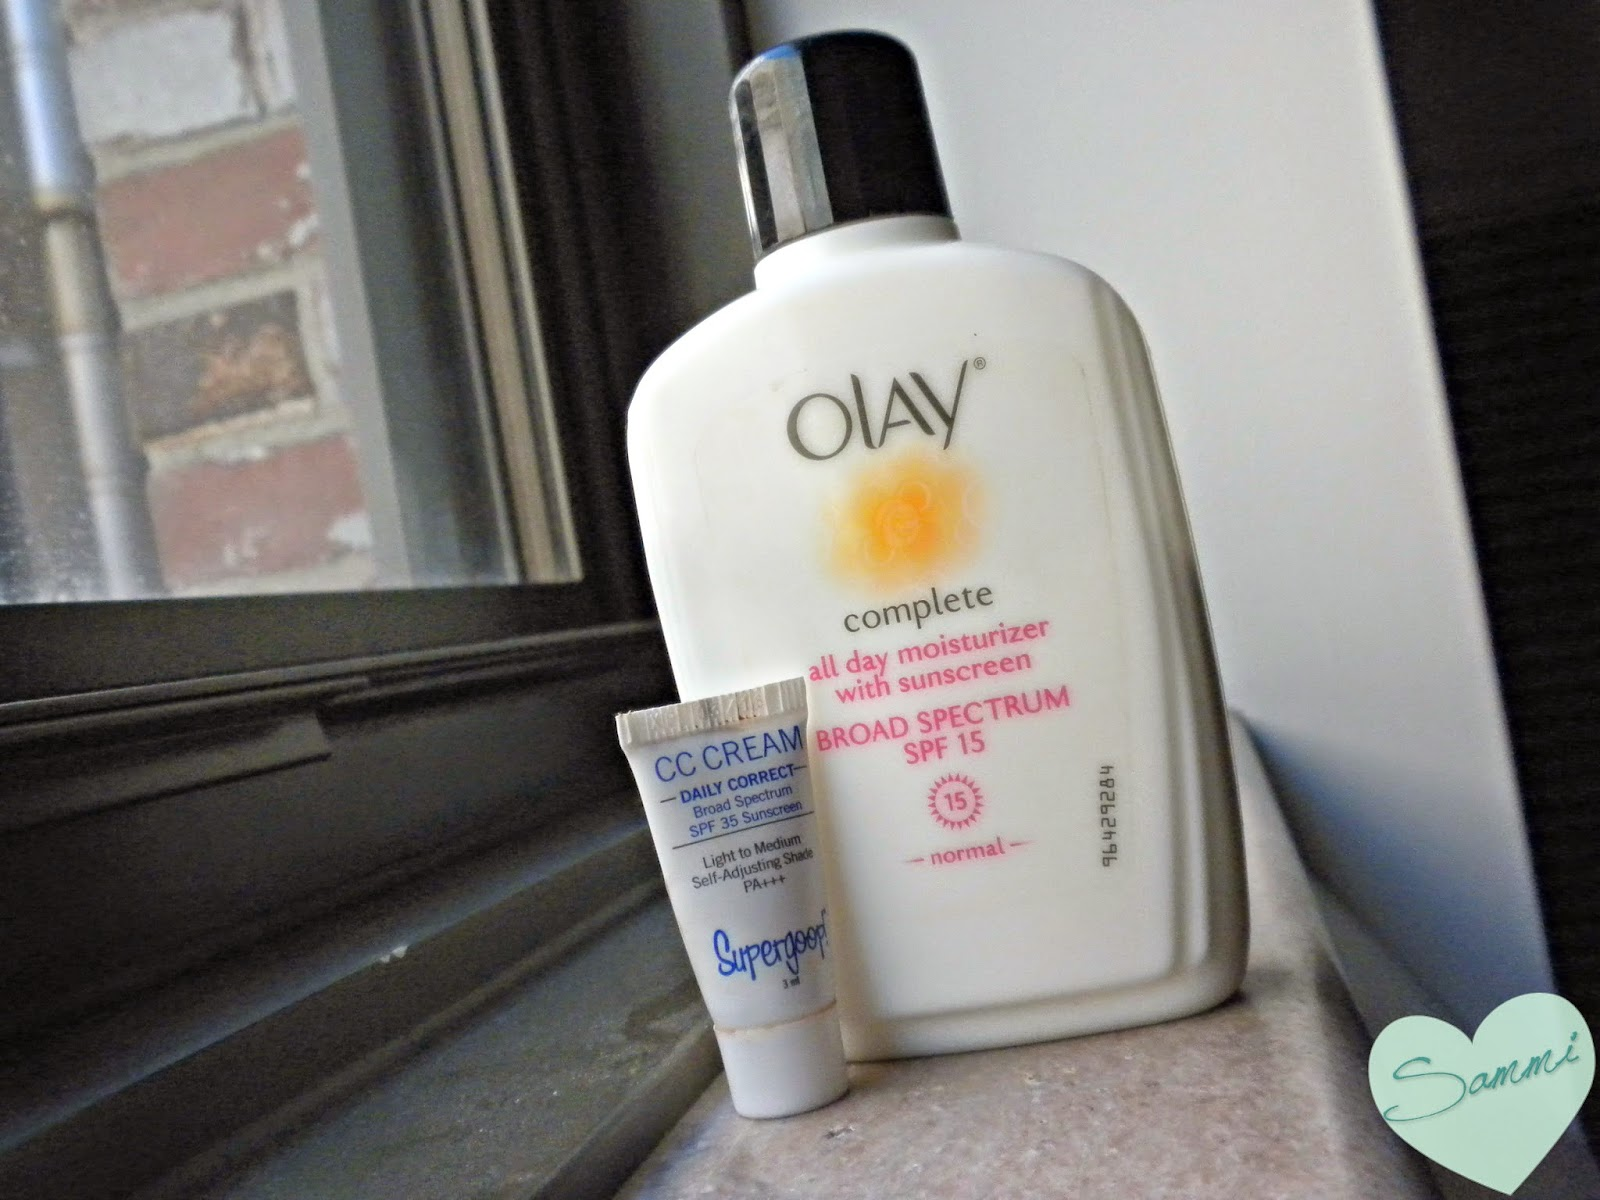 OLAY Complete All Day Moisturizer with SPF 15 ($8 for 4oz) and SUPERGOOP! CC Cream SPF 35 in Light to Medium ($32 for 1.6oz)